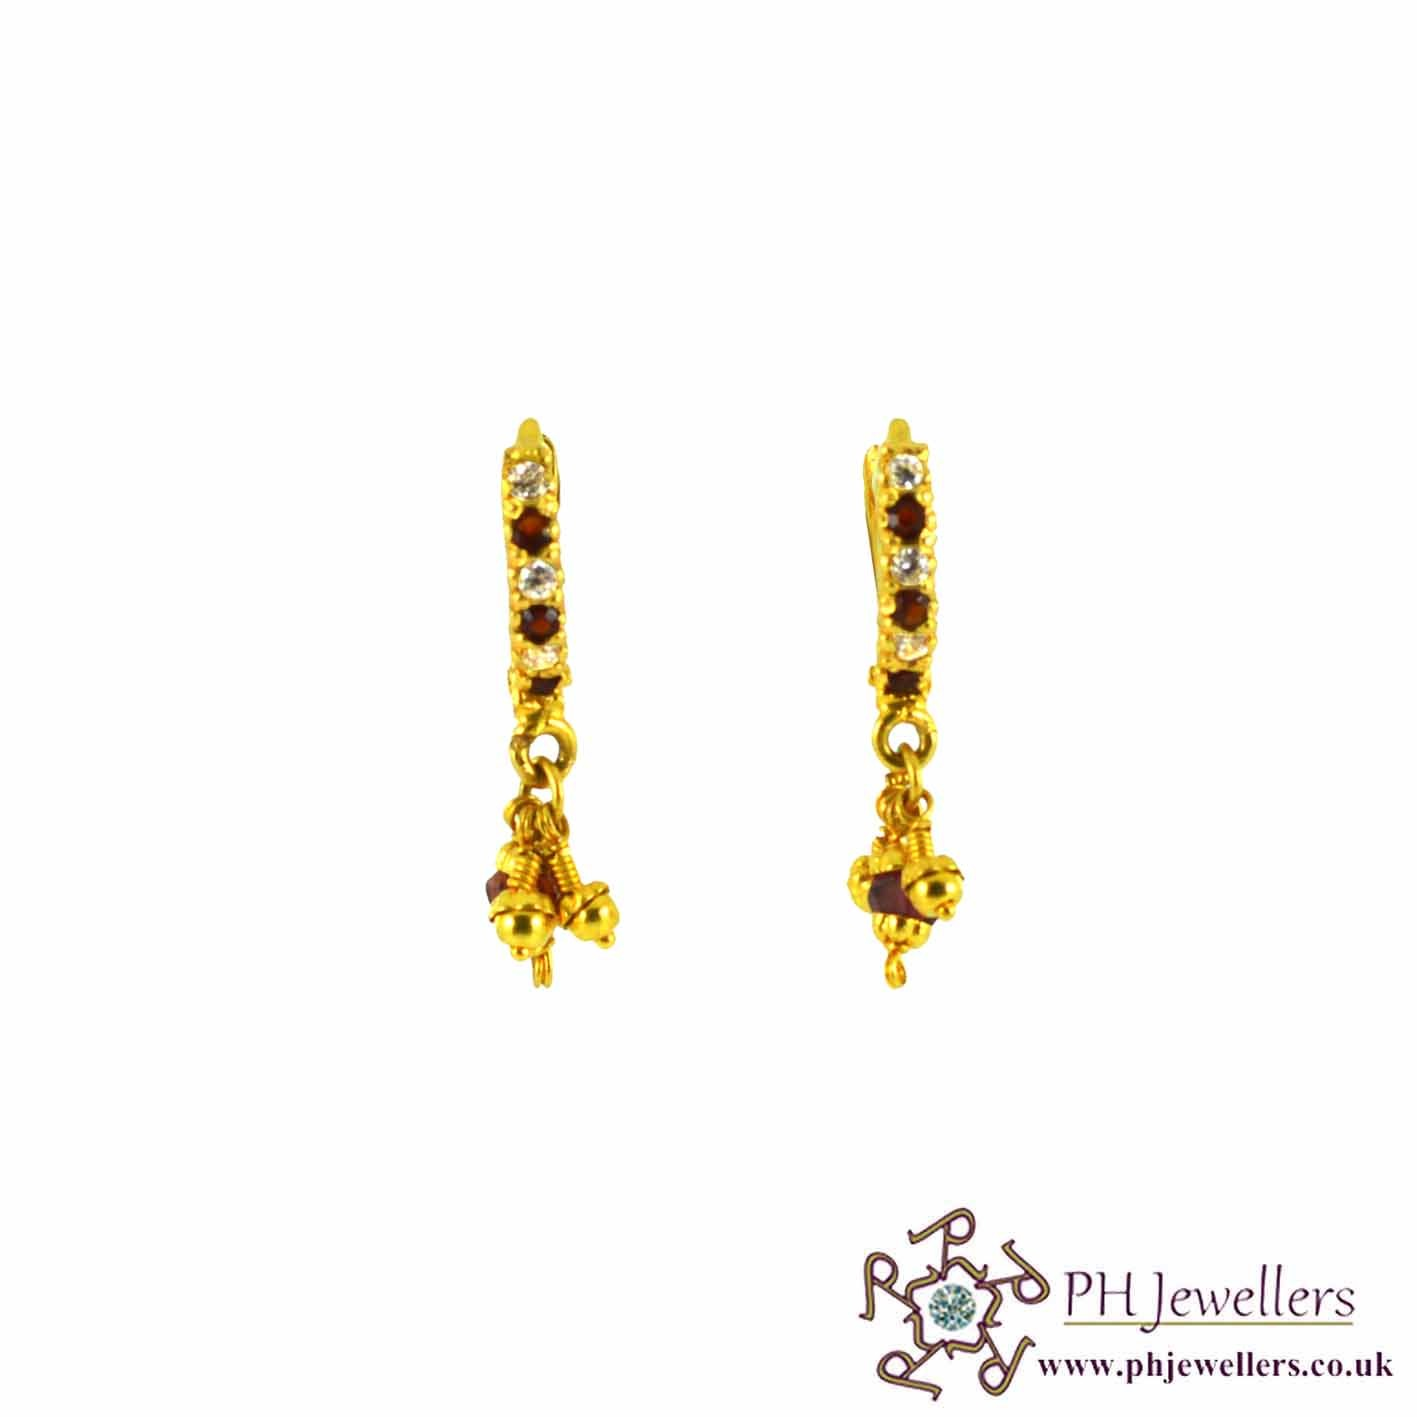 22ct 916 Hallmark Yellow Gold Clip On Garnet & White Earring CZ CE6